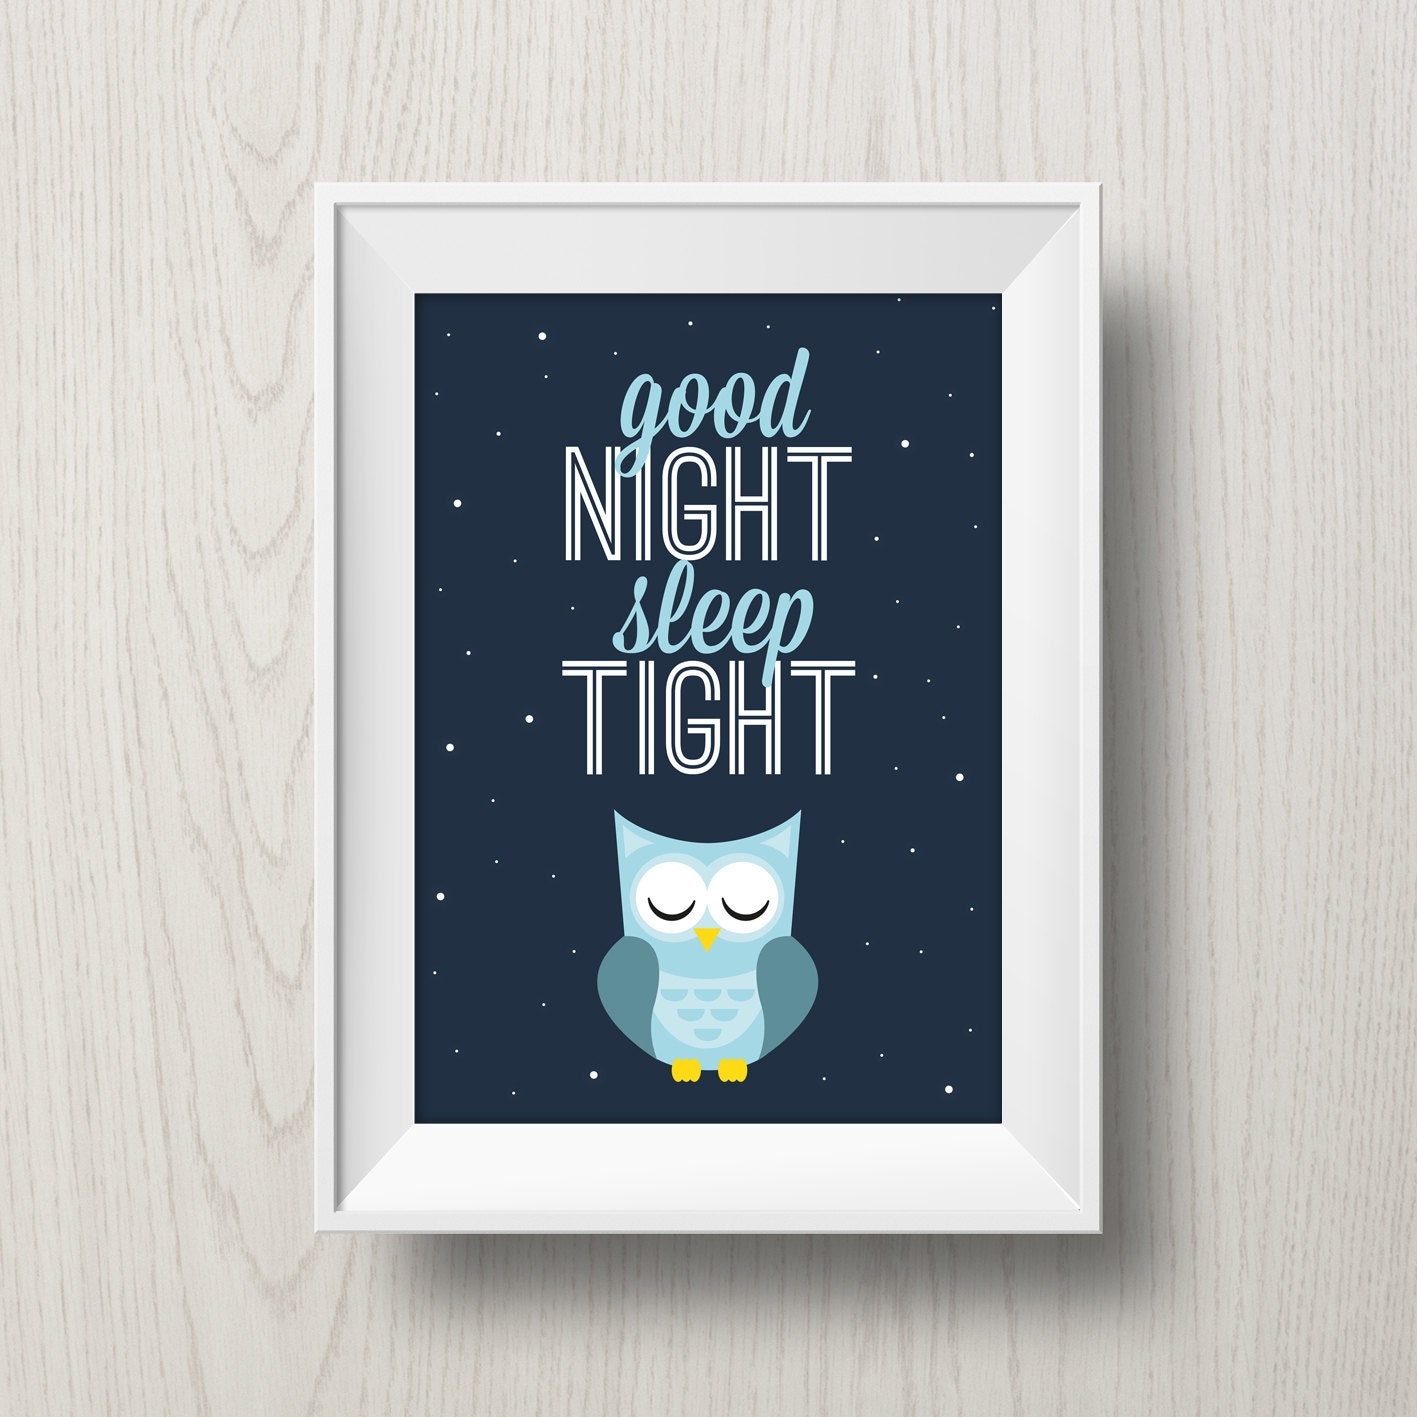 printable owl poster 39 good night sleep tight 39. Black Bedroom Furniture Sets. Home Design Ideas